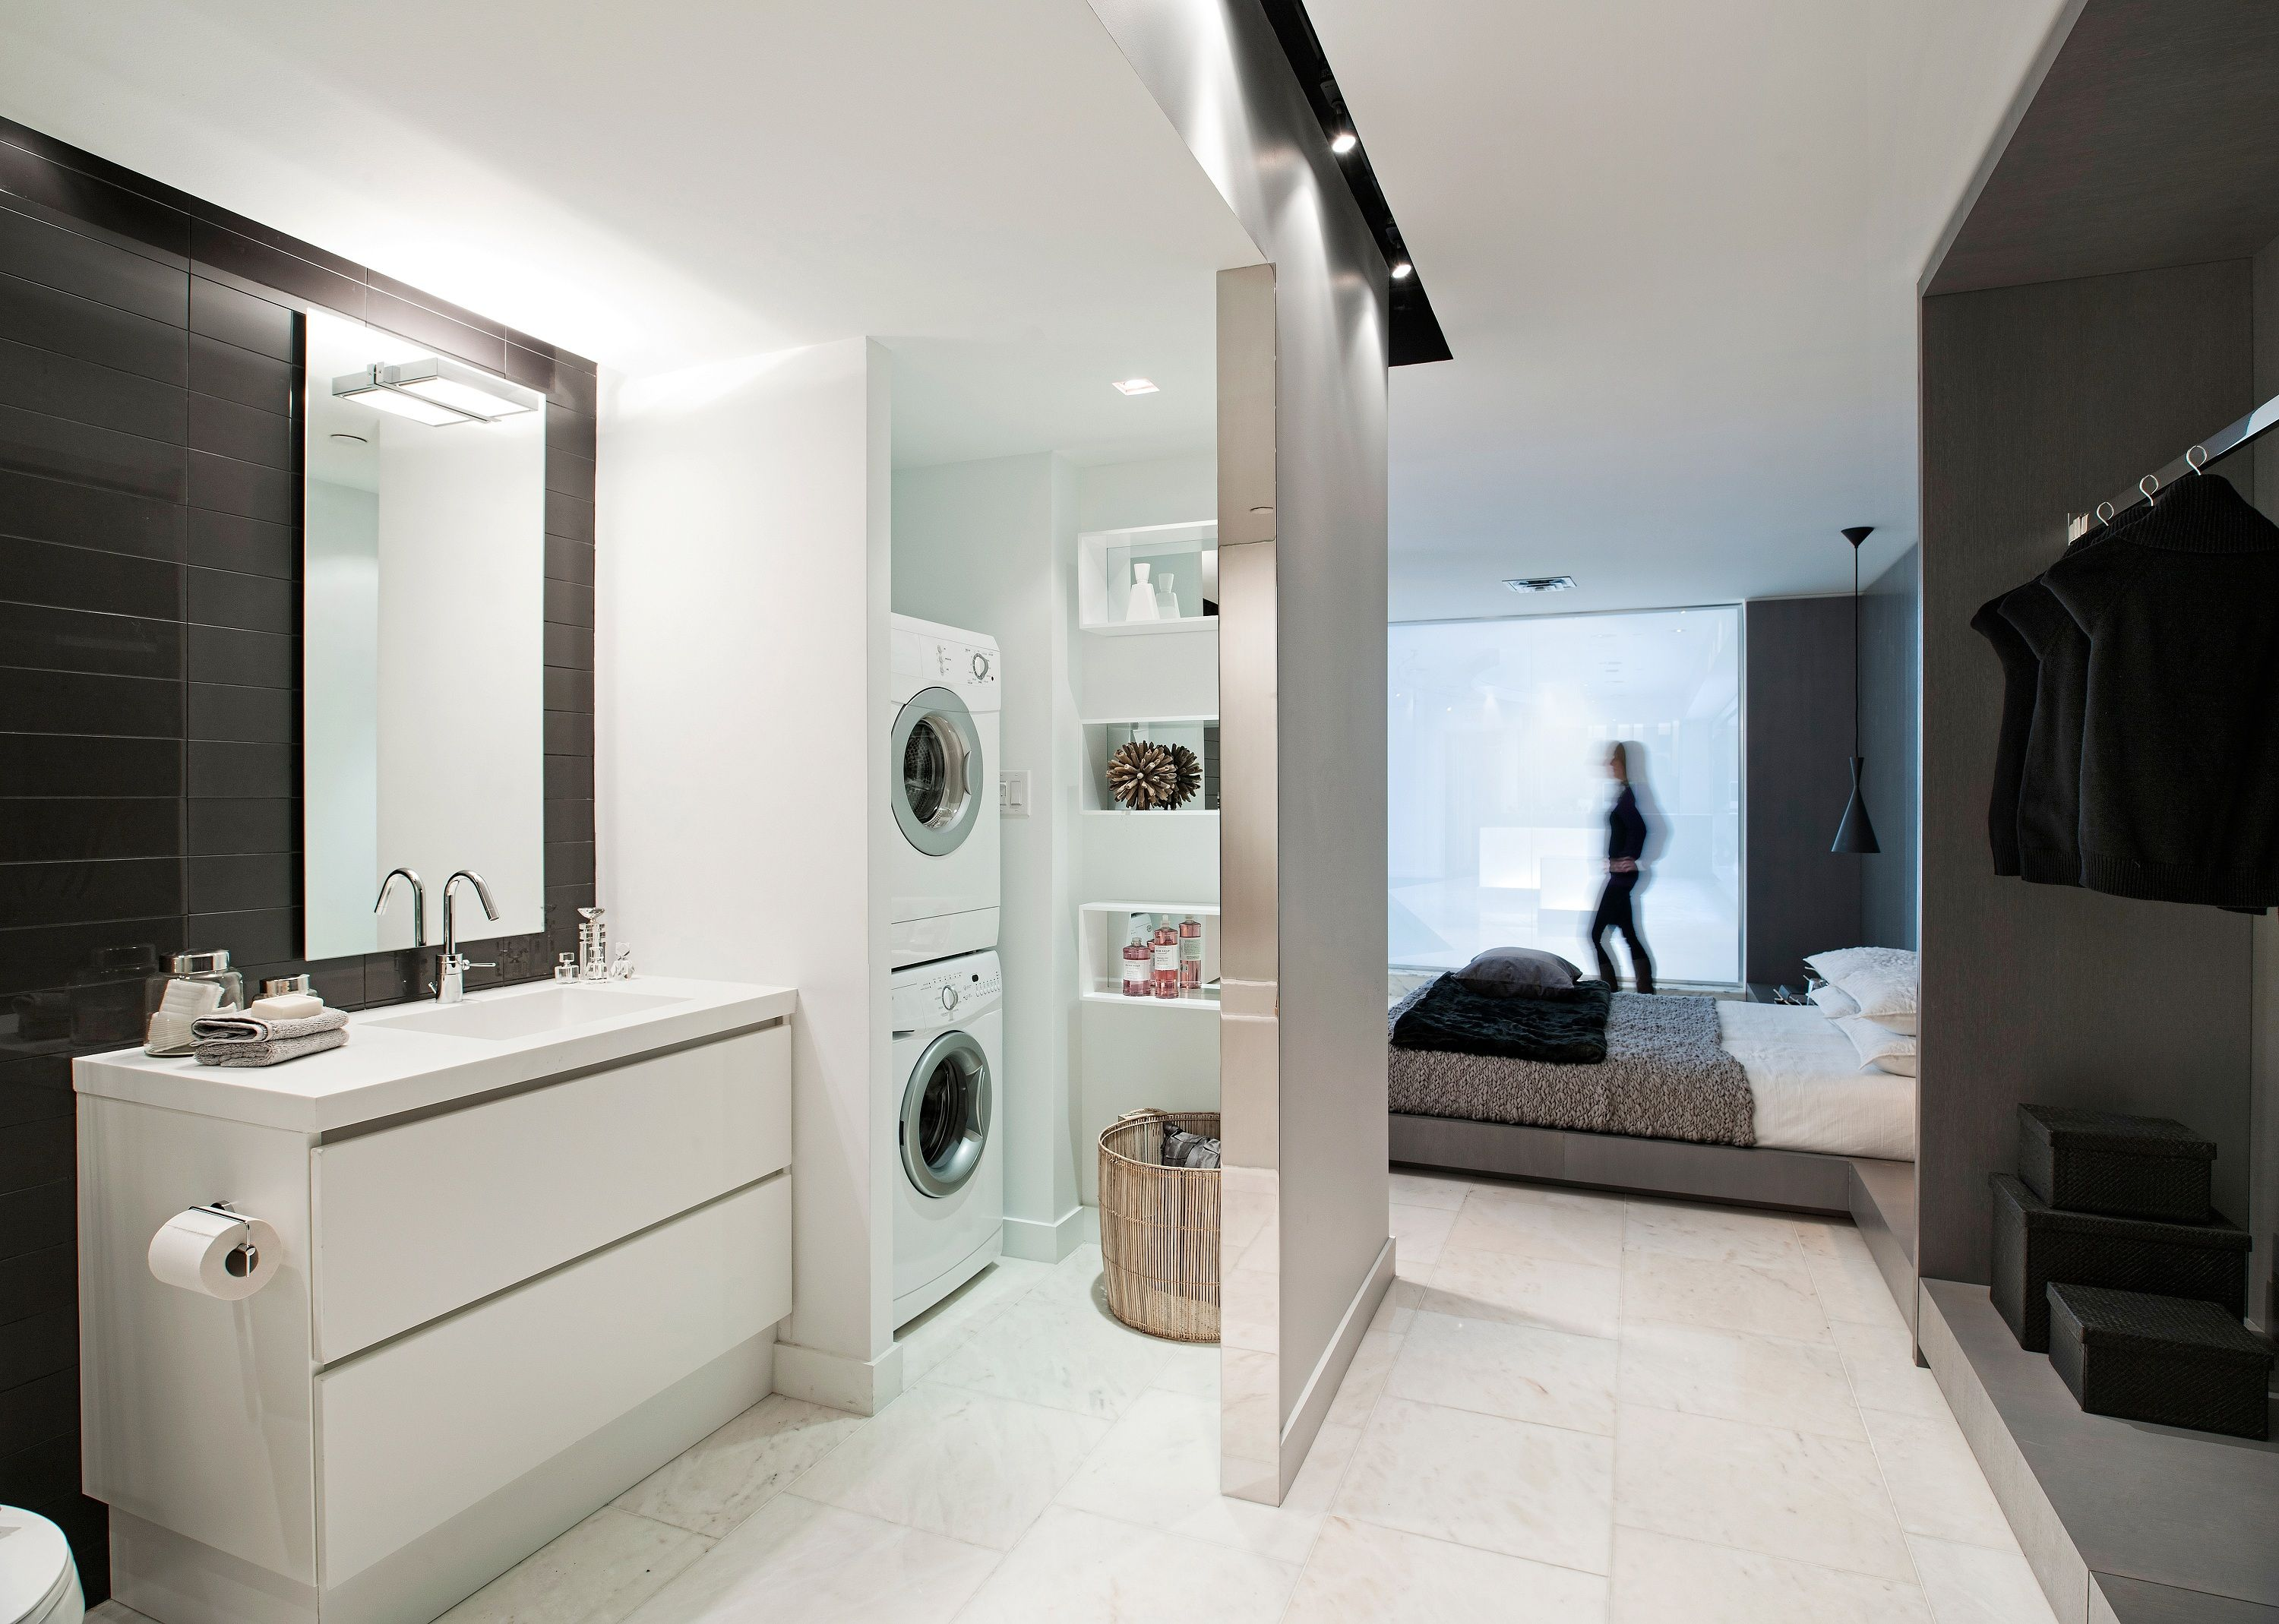 small bathroom bathroom designs bathroom tile shower on extraordinary small laundry room design and decorating ideas modest laundry space id=51957